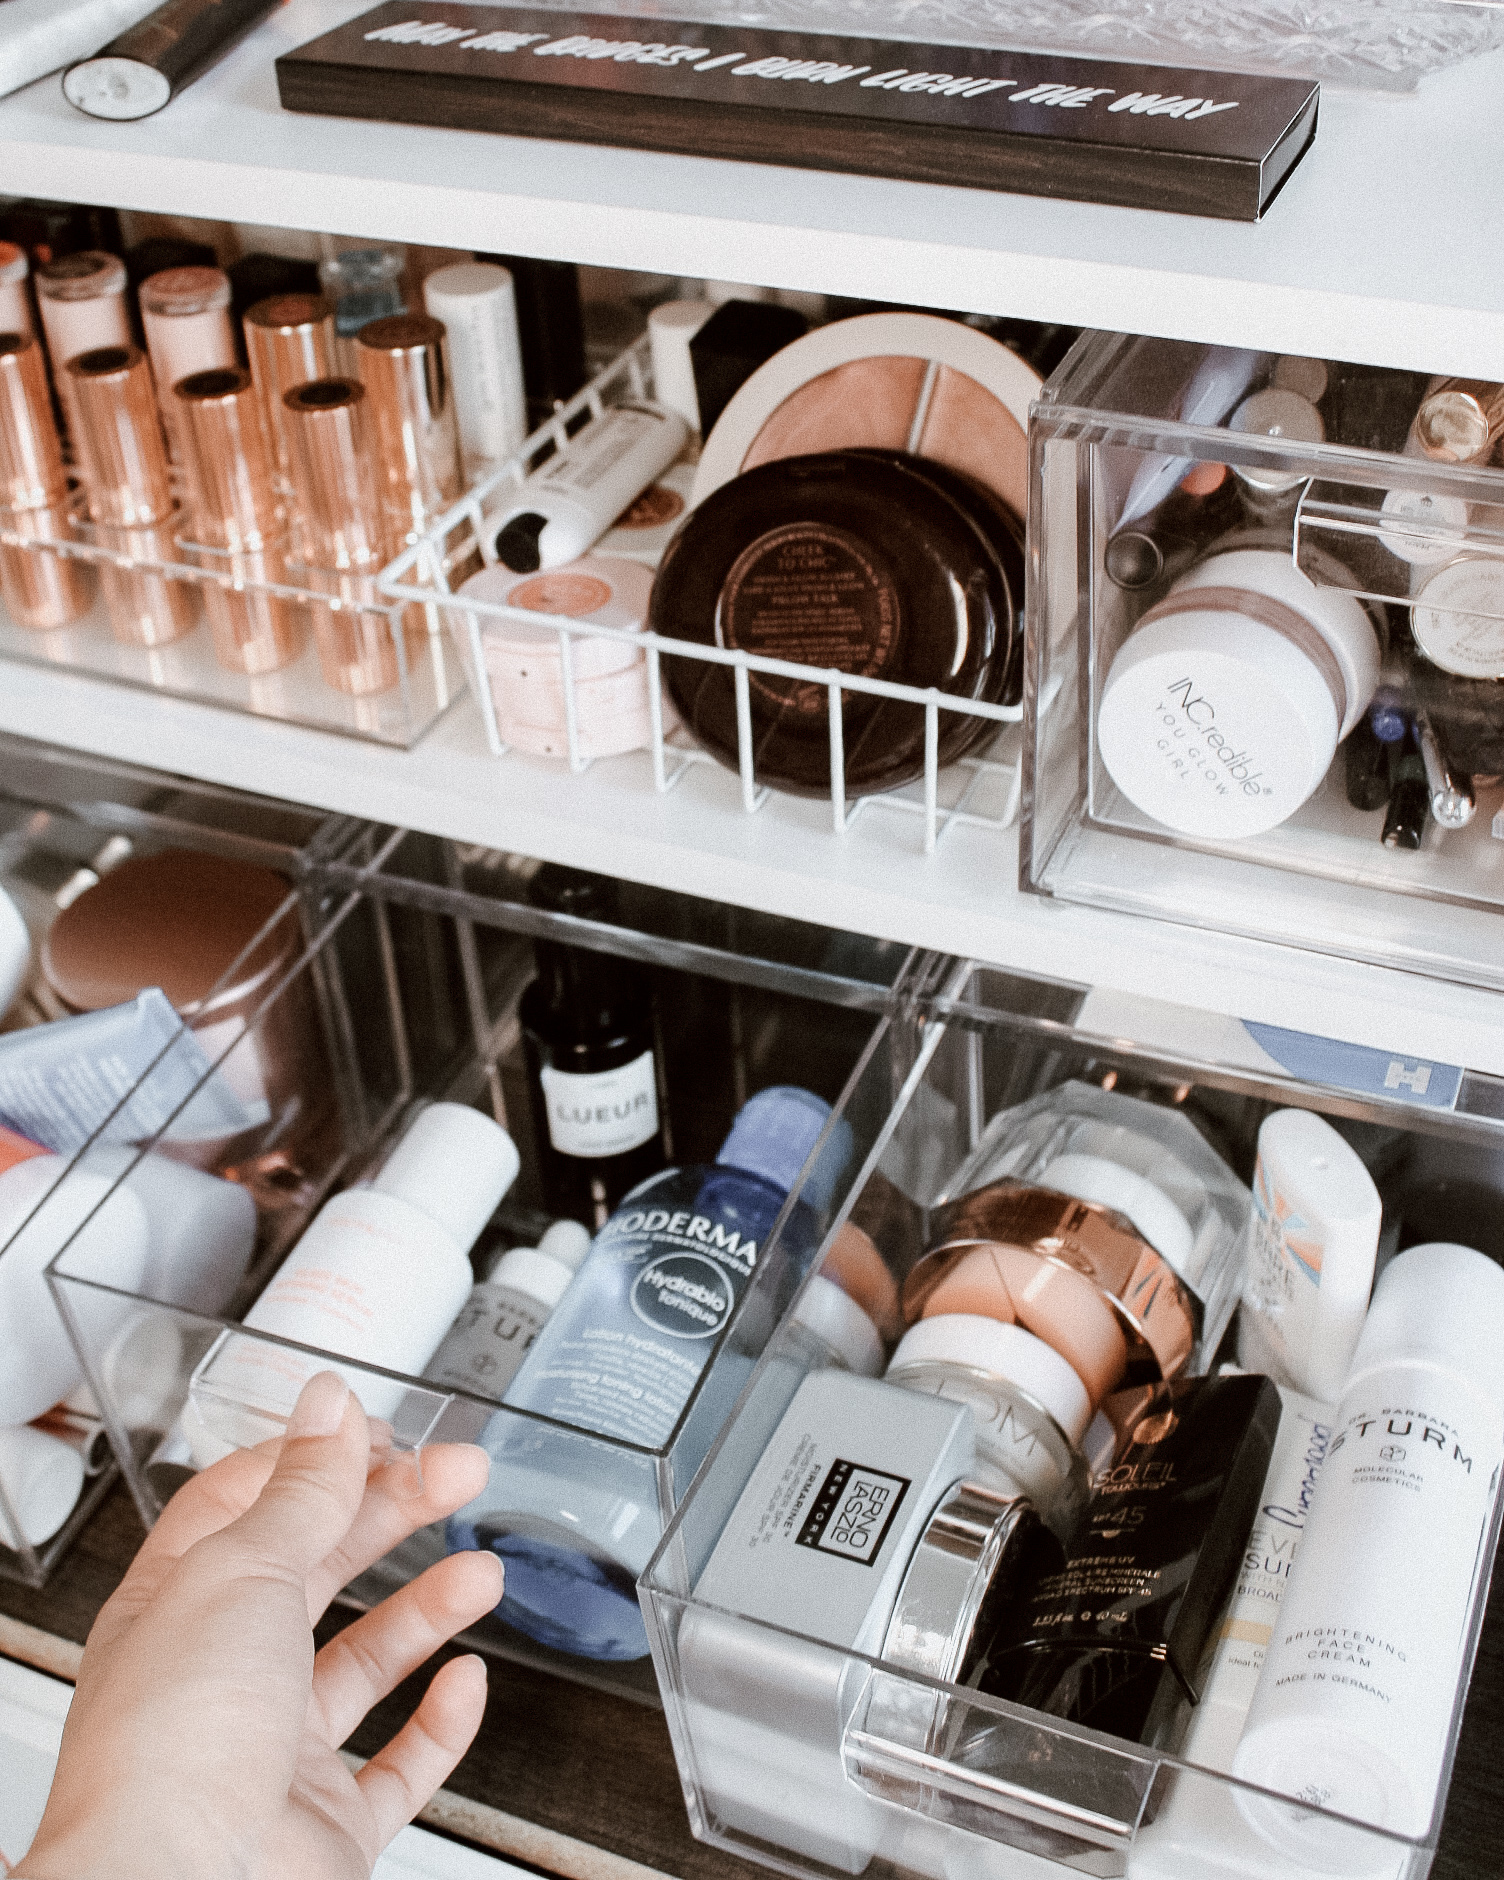 6 Beauty And Skincare Product Organization Tips To Streamline Your Routine The Glossarray Your Beauty Skincare Glossary